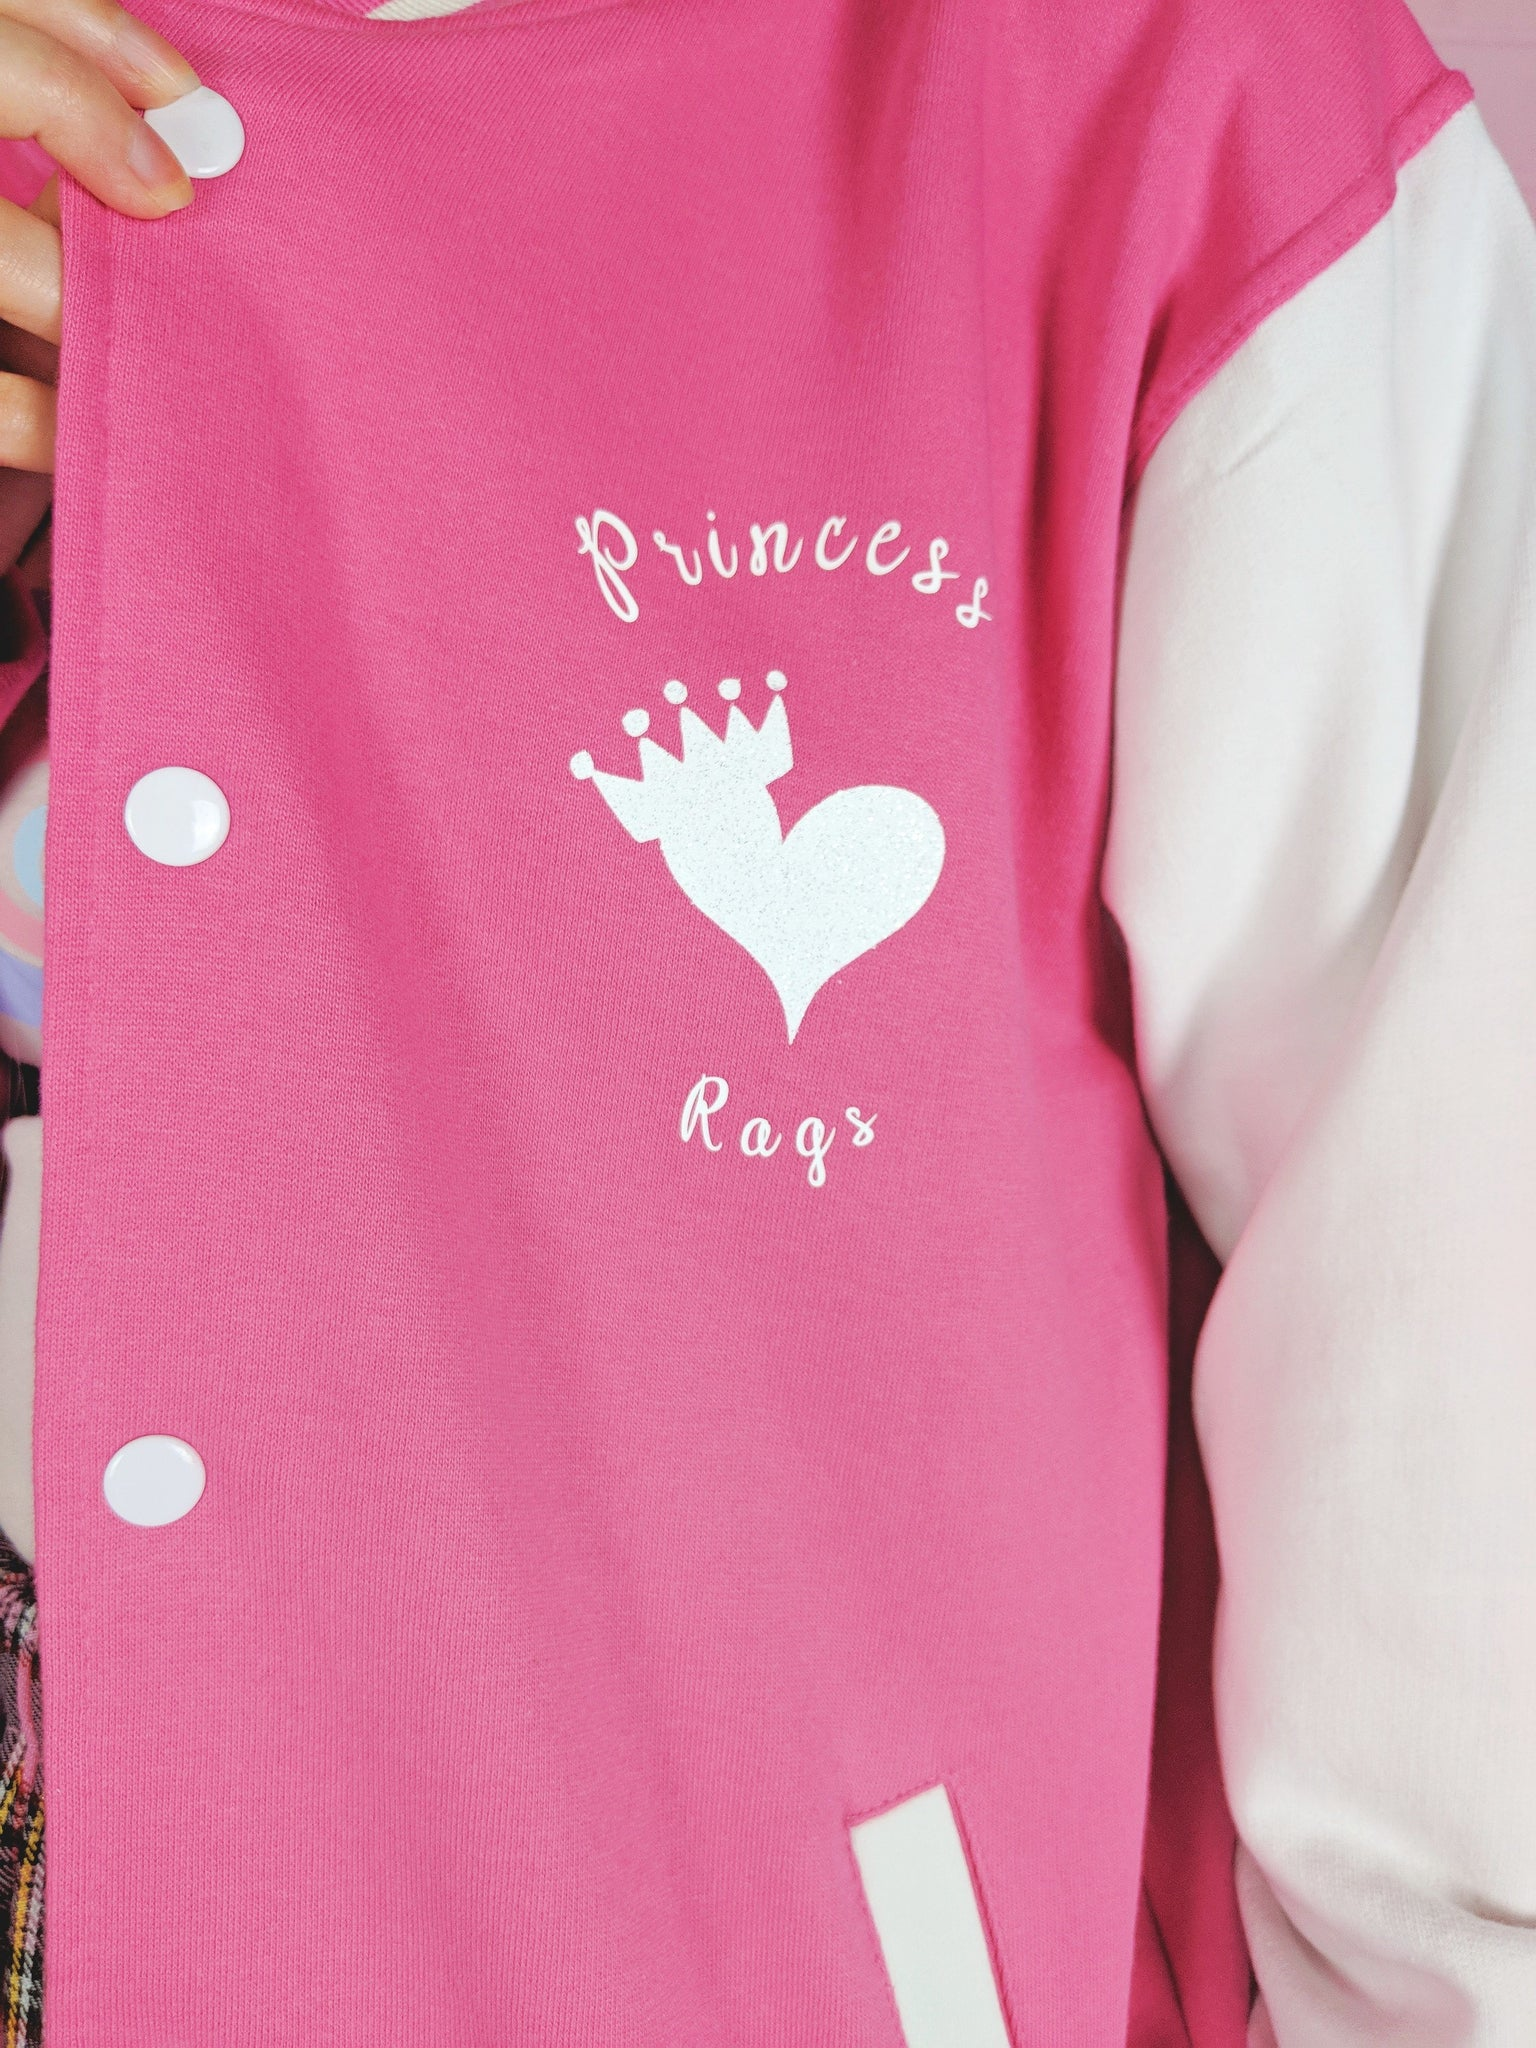 Princess Rags Official Club Jacket